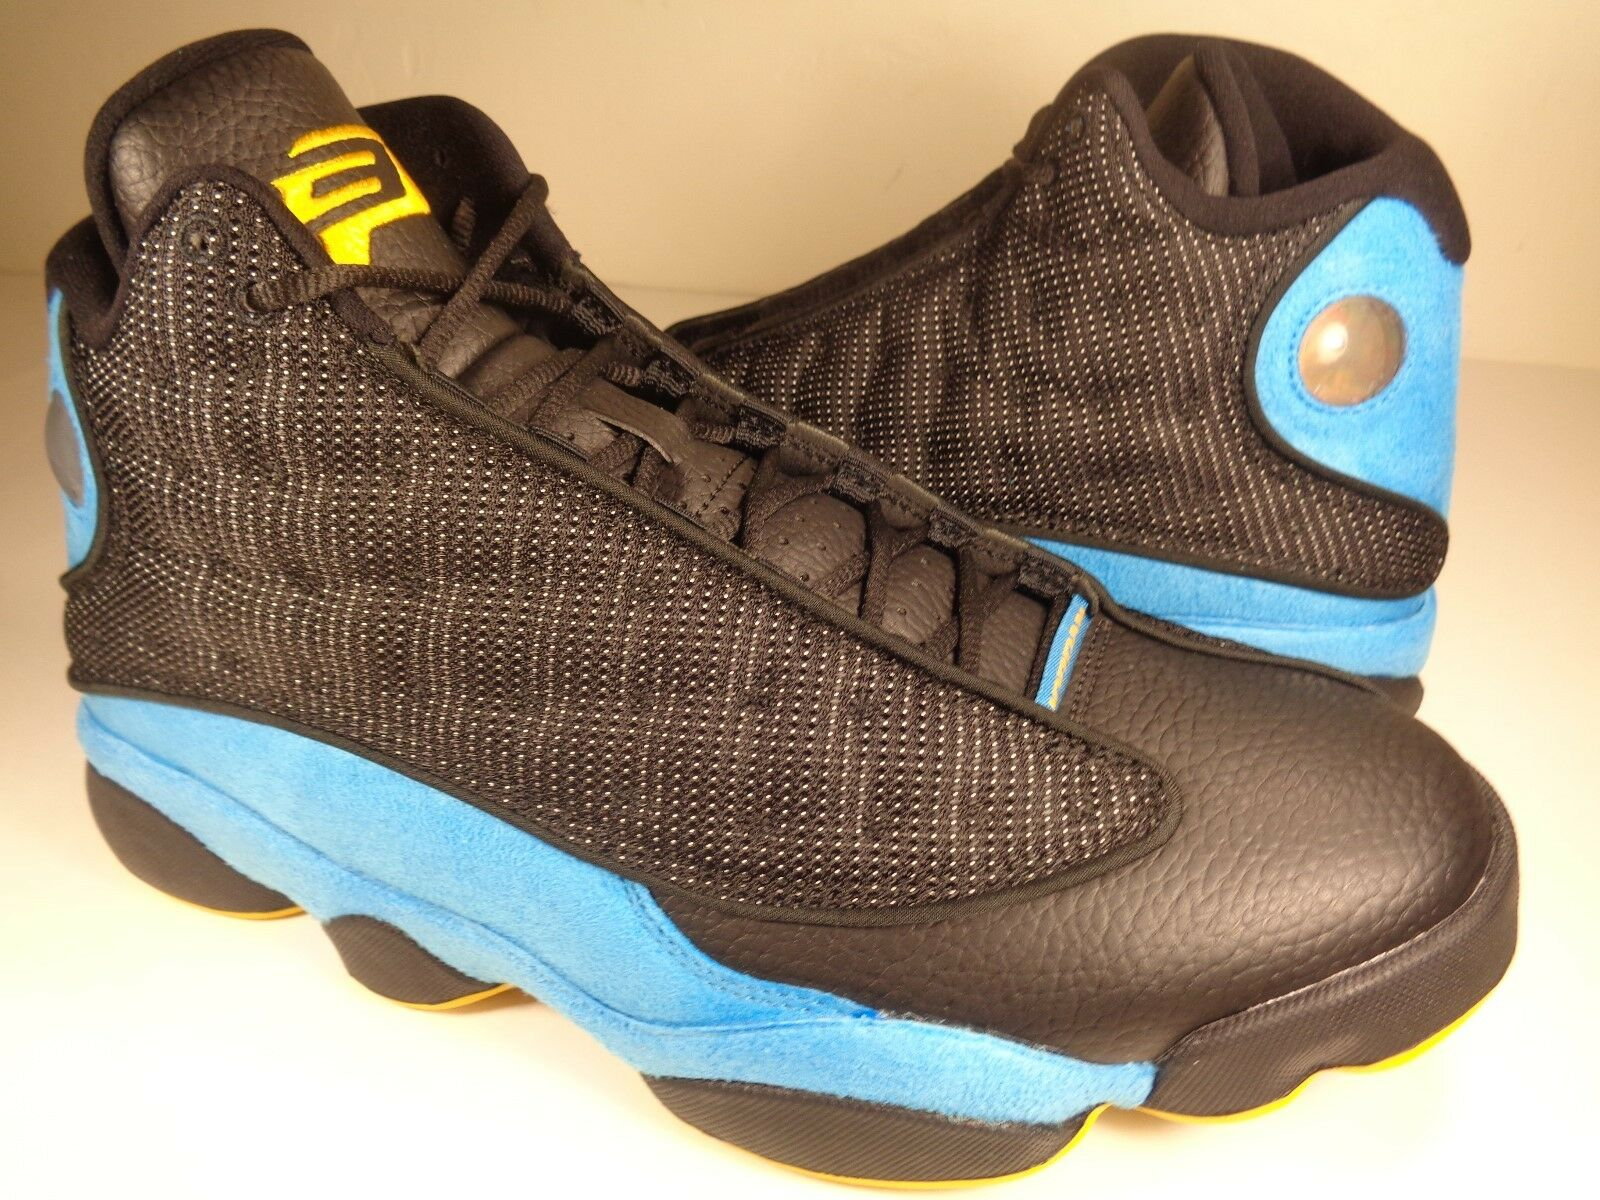 nike air jordan retro - 13. chris paul hornissen - pe cp3 blaue sz - hornissen 9 (823902-015) 47c8cd